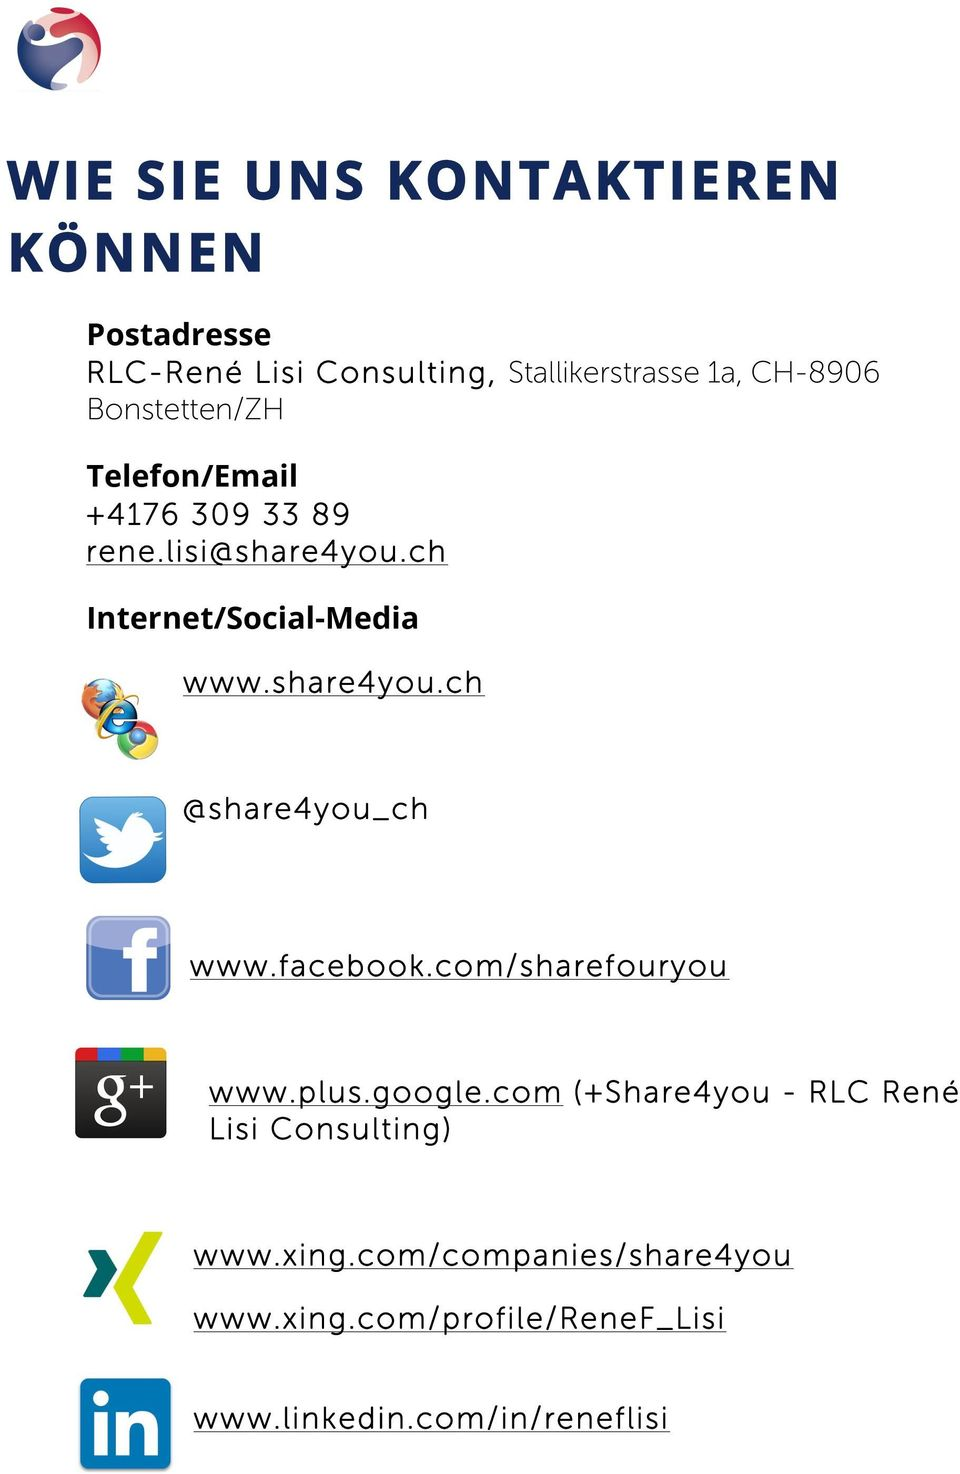 share4you.ch @share4you_ch www.facebook.com/sharefouryou www.plus.google.